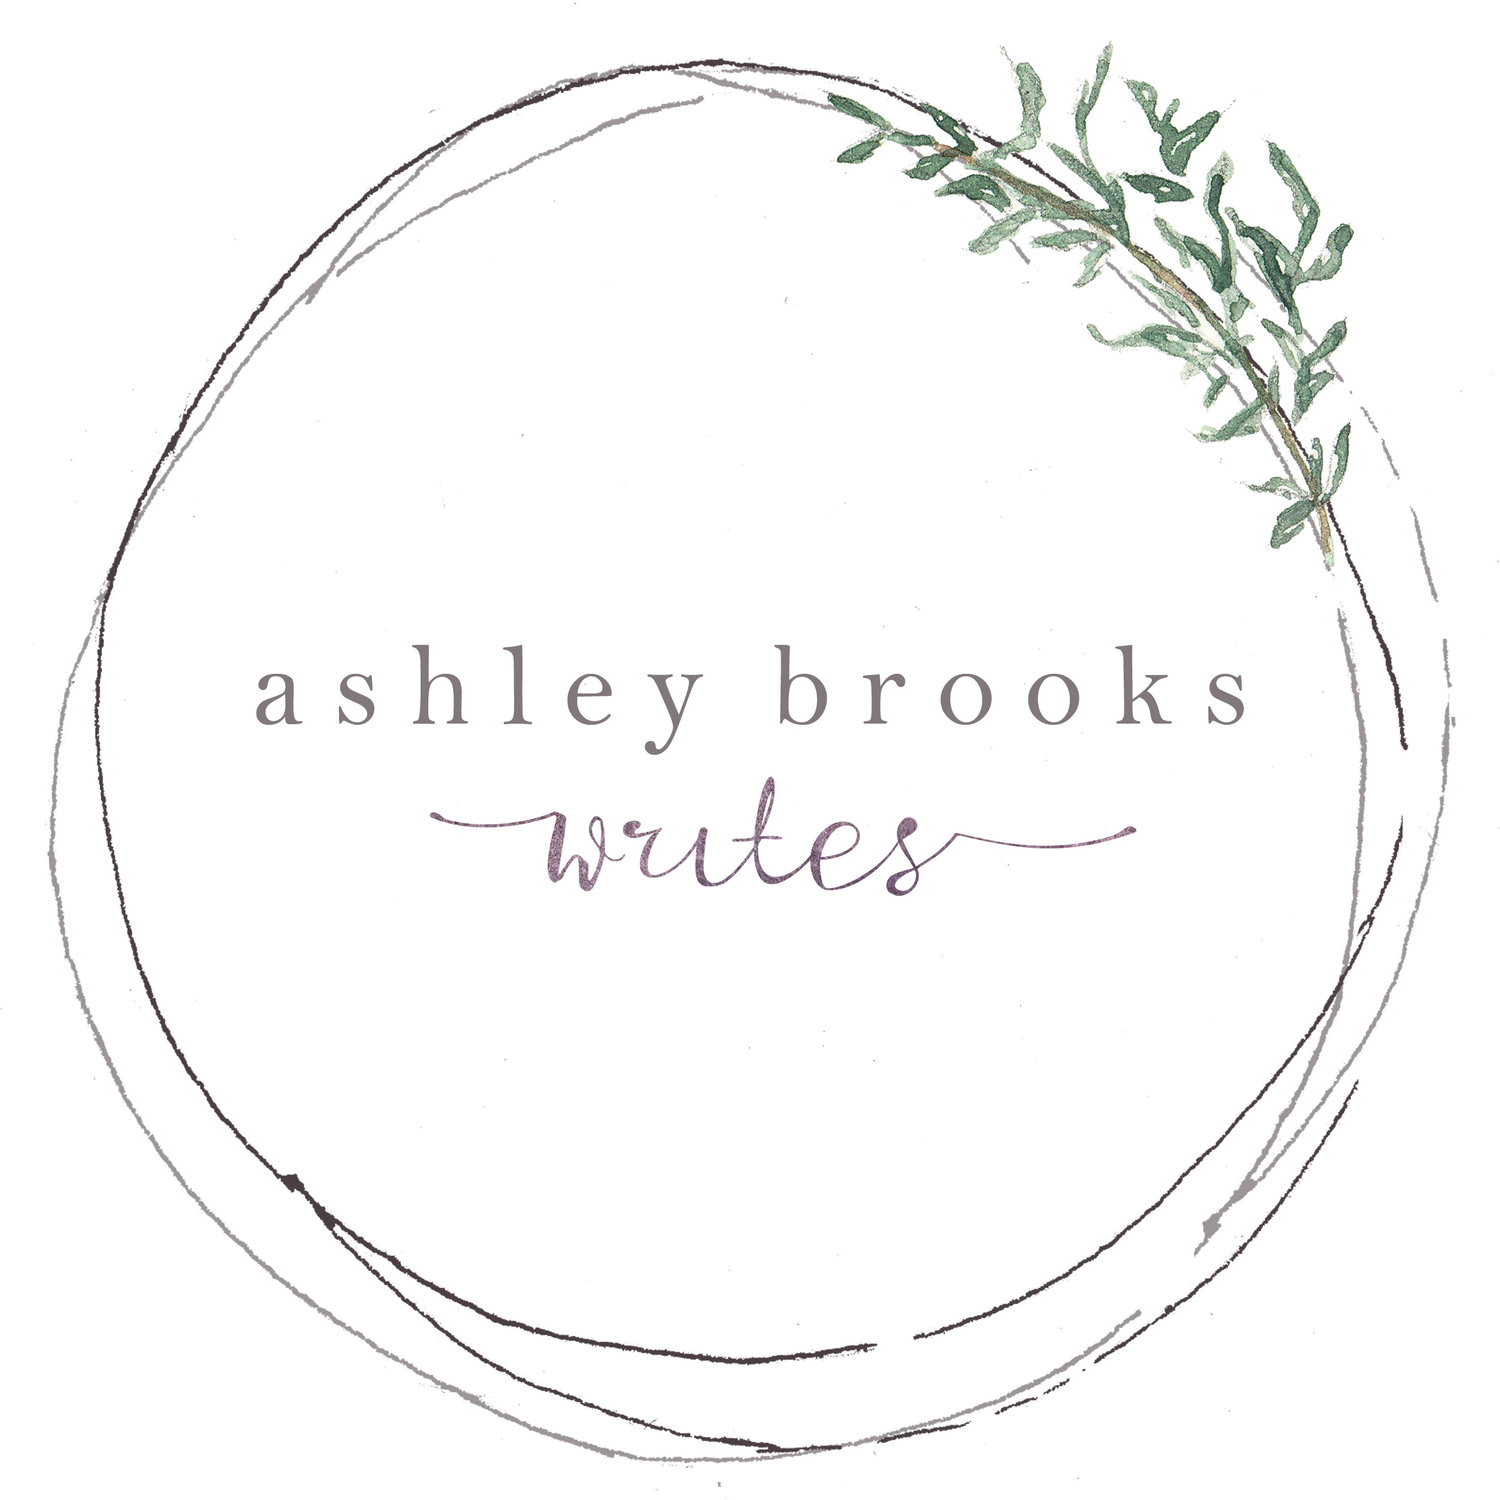 Ashley Brooks Writes